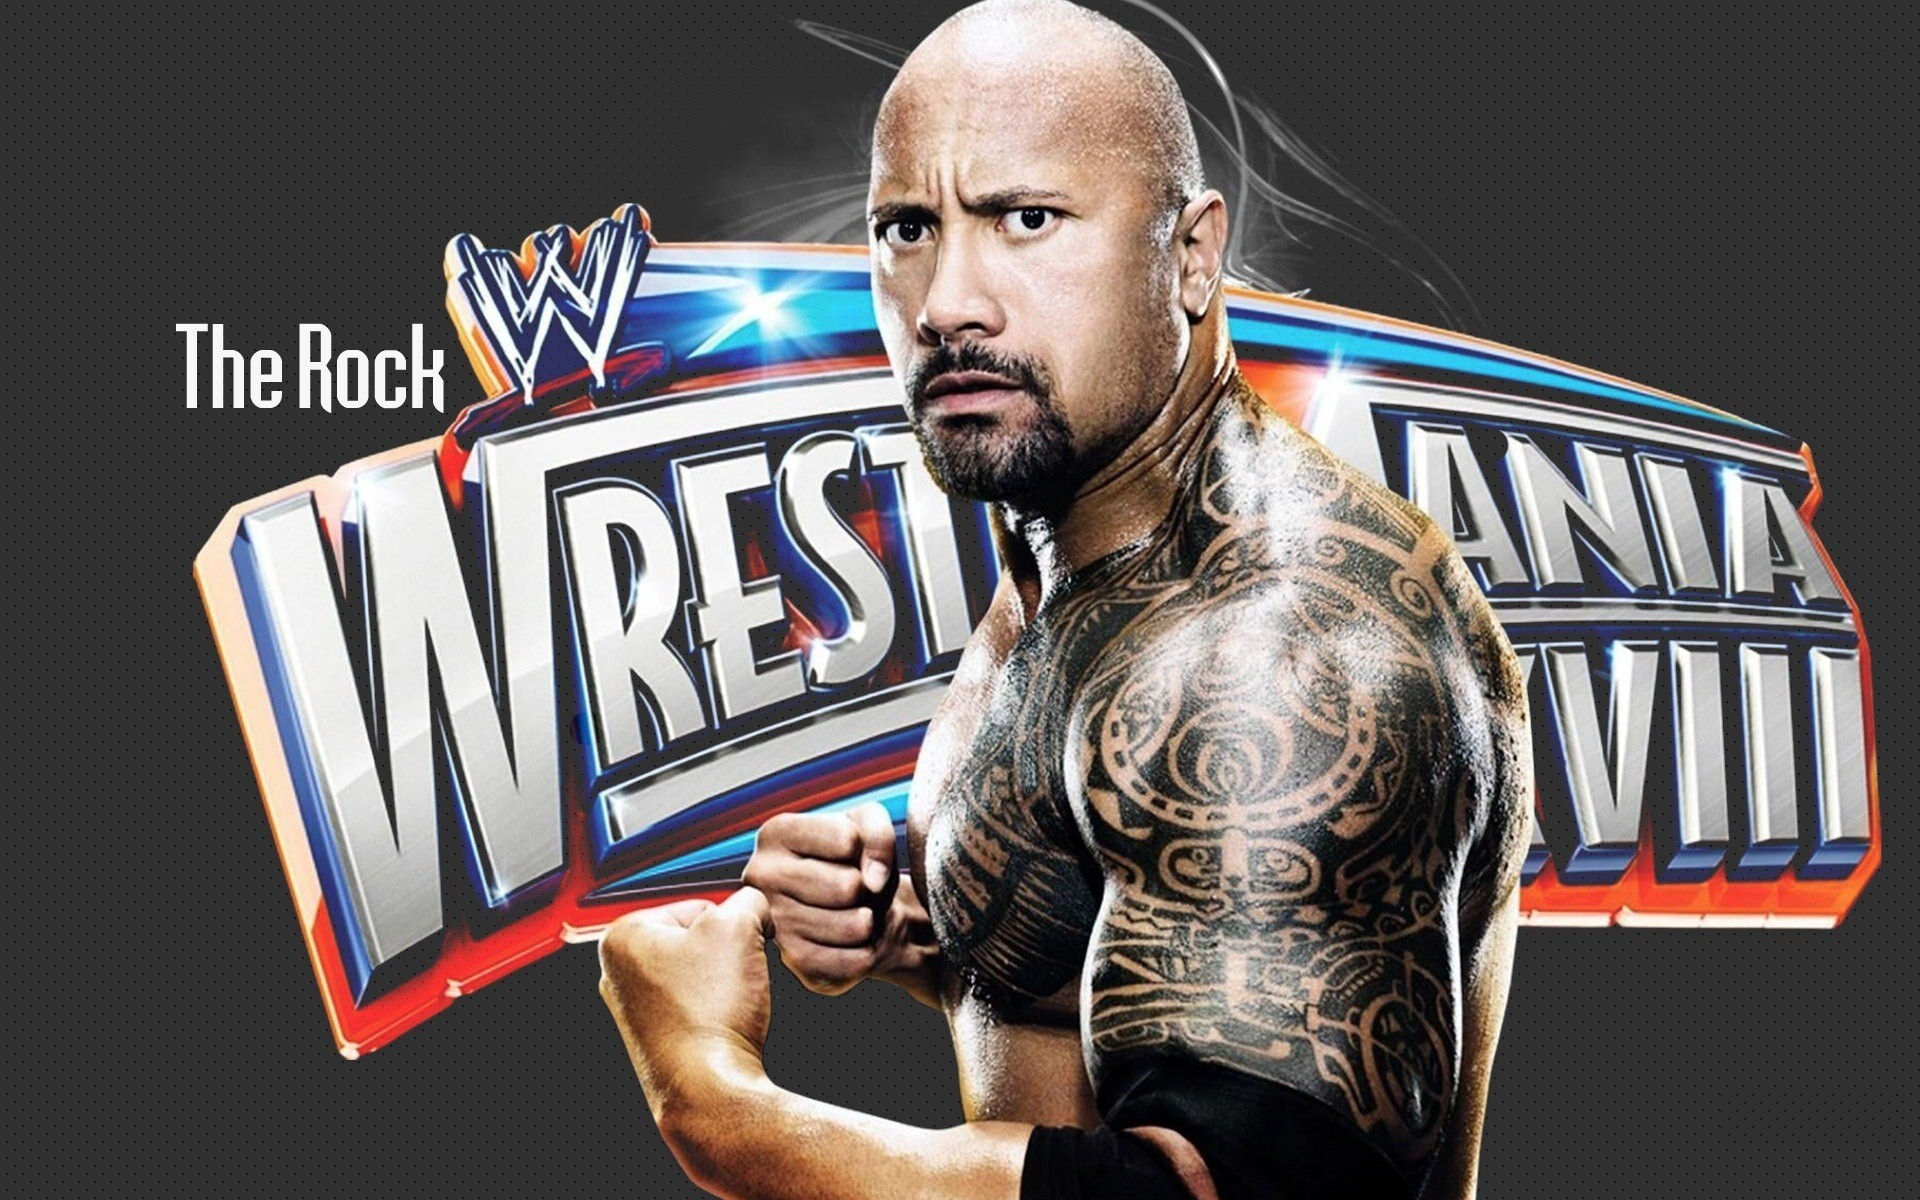 Wwe Super Star The Rock In Wrestlemania Hd Wallpapers